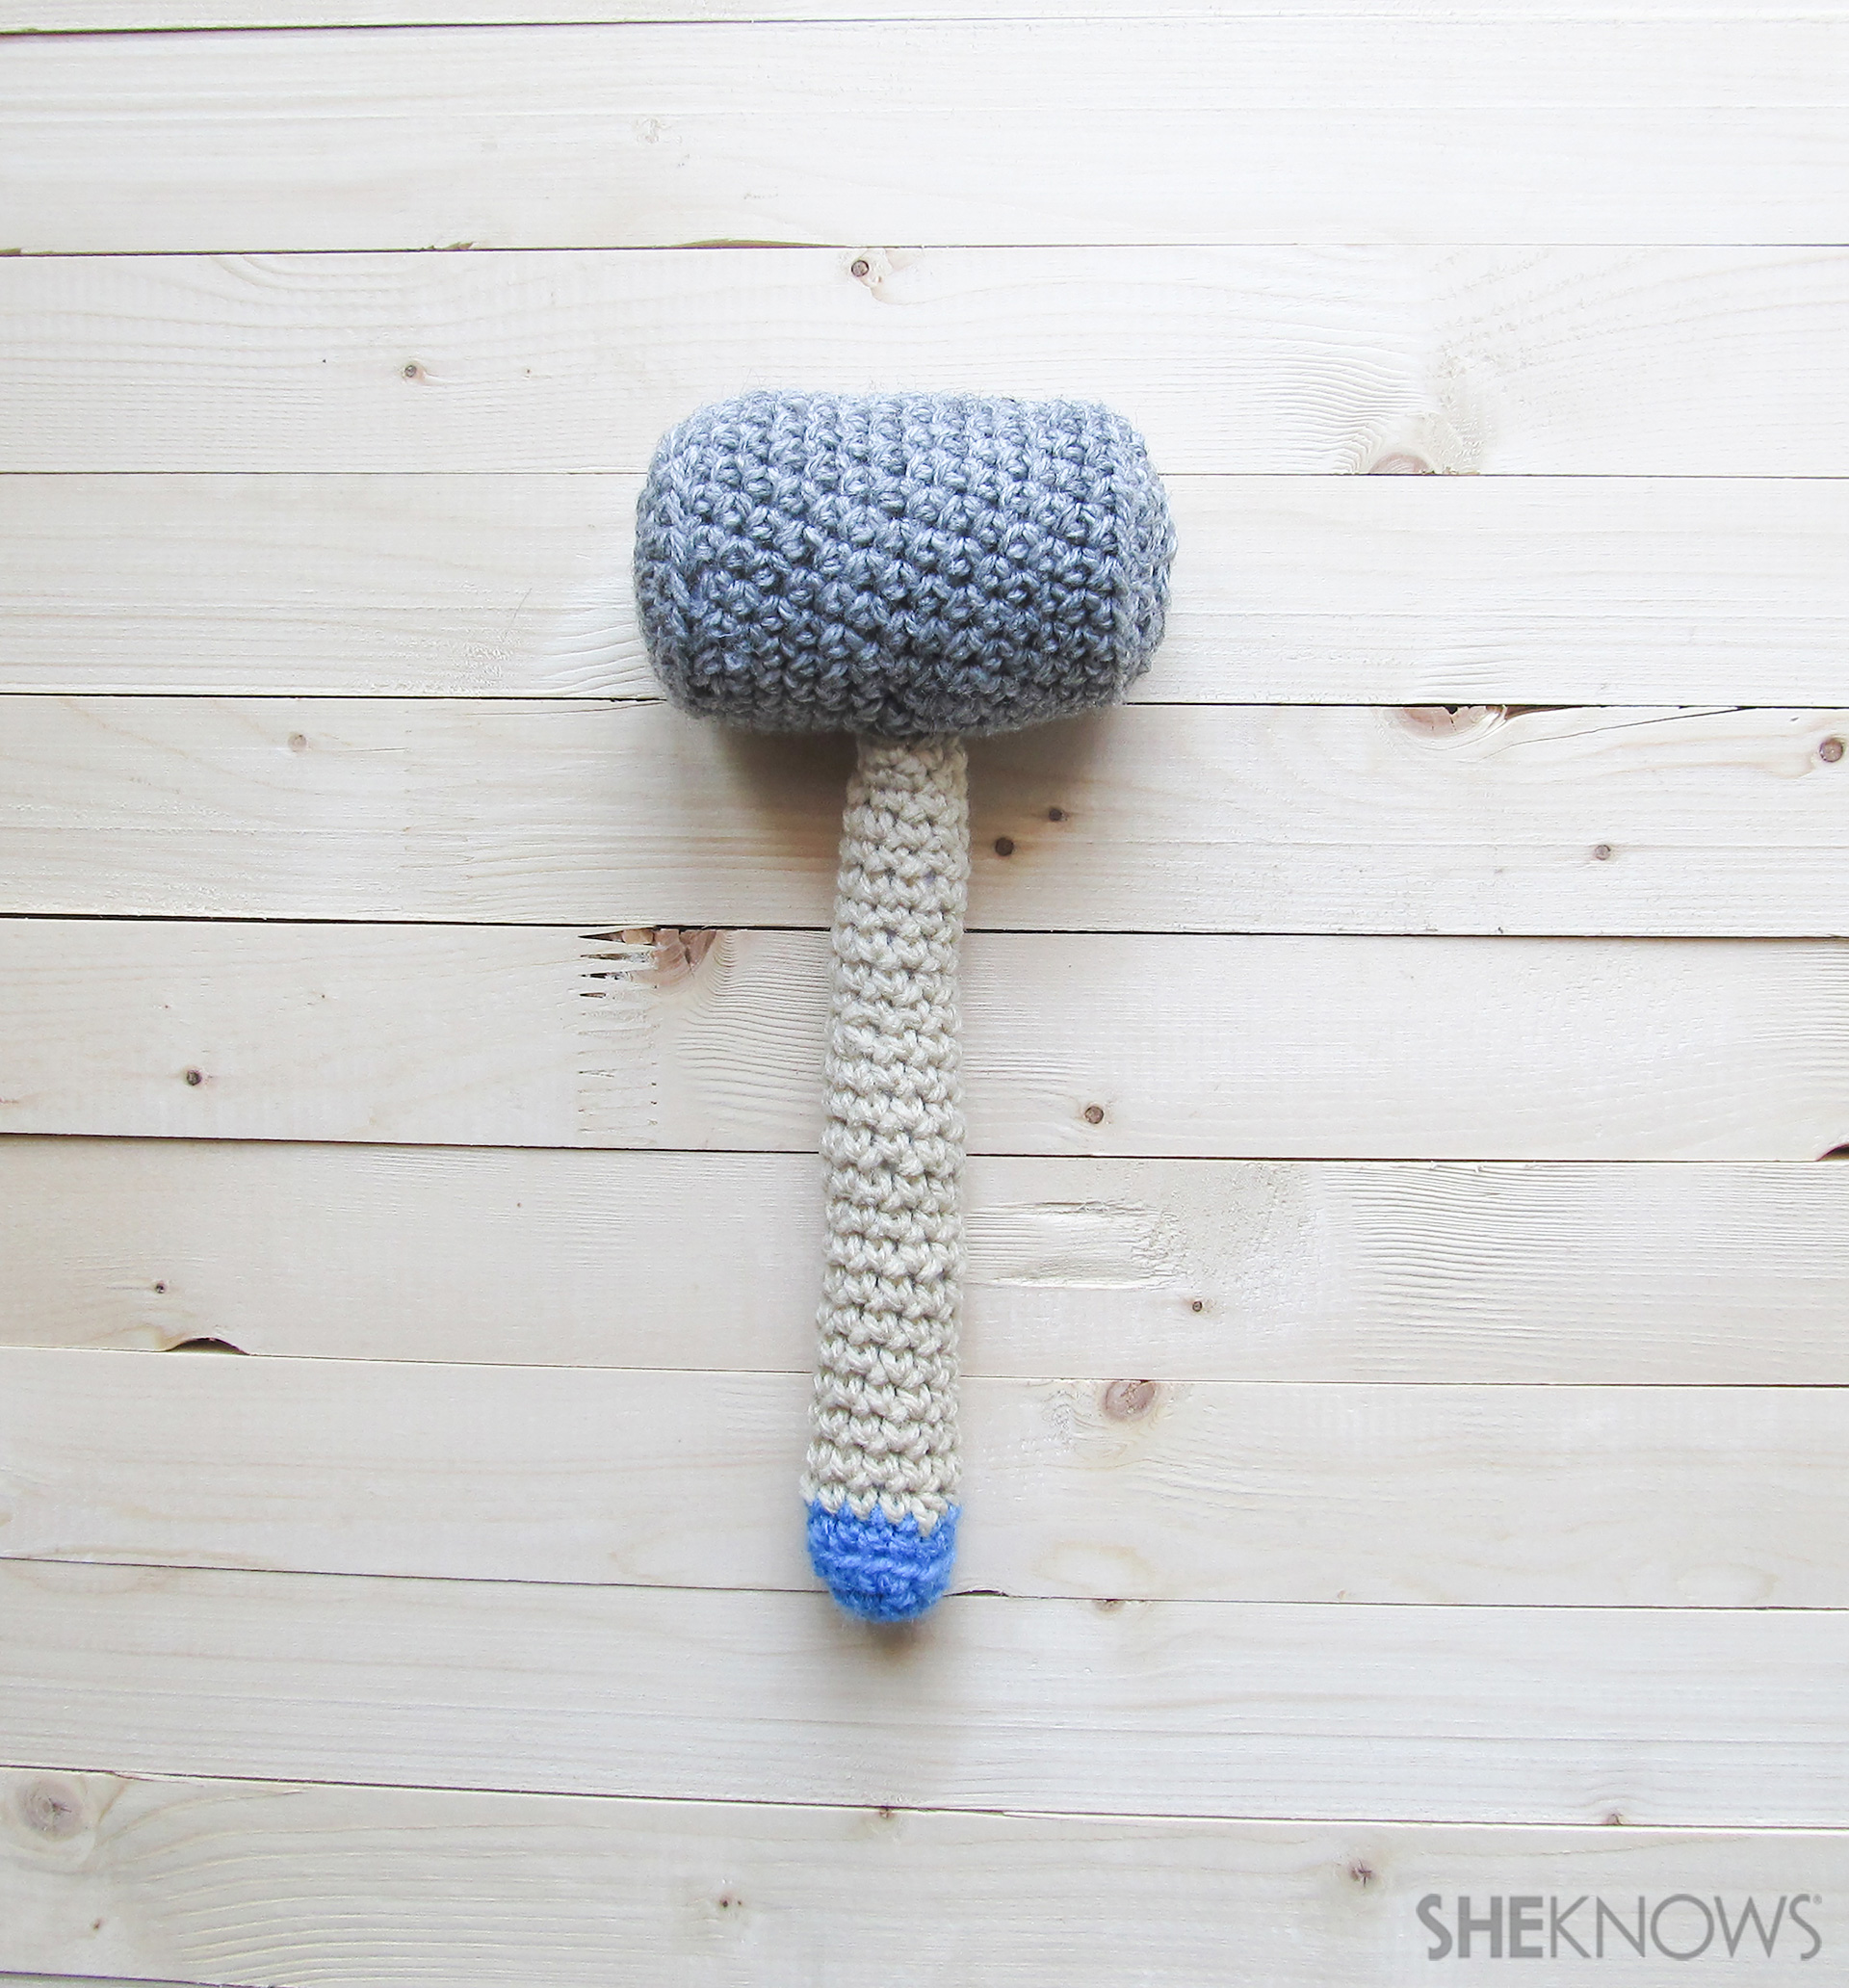 Crocheting Tools : Next: Crochet tool set for Fathers Day- screwdriver